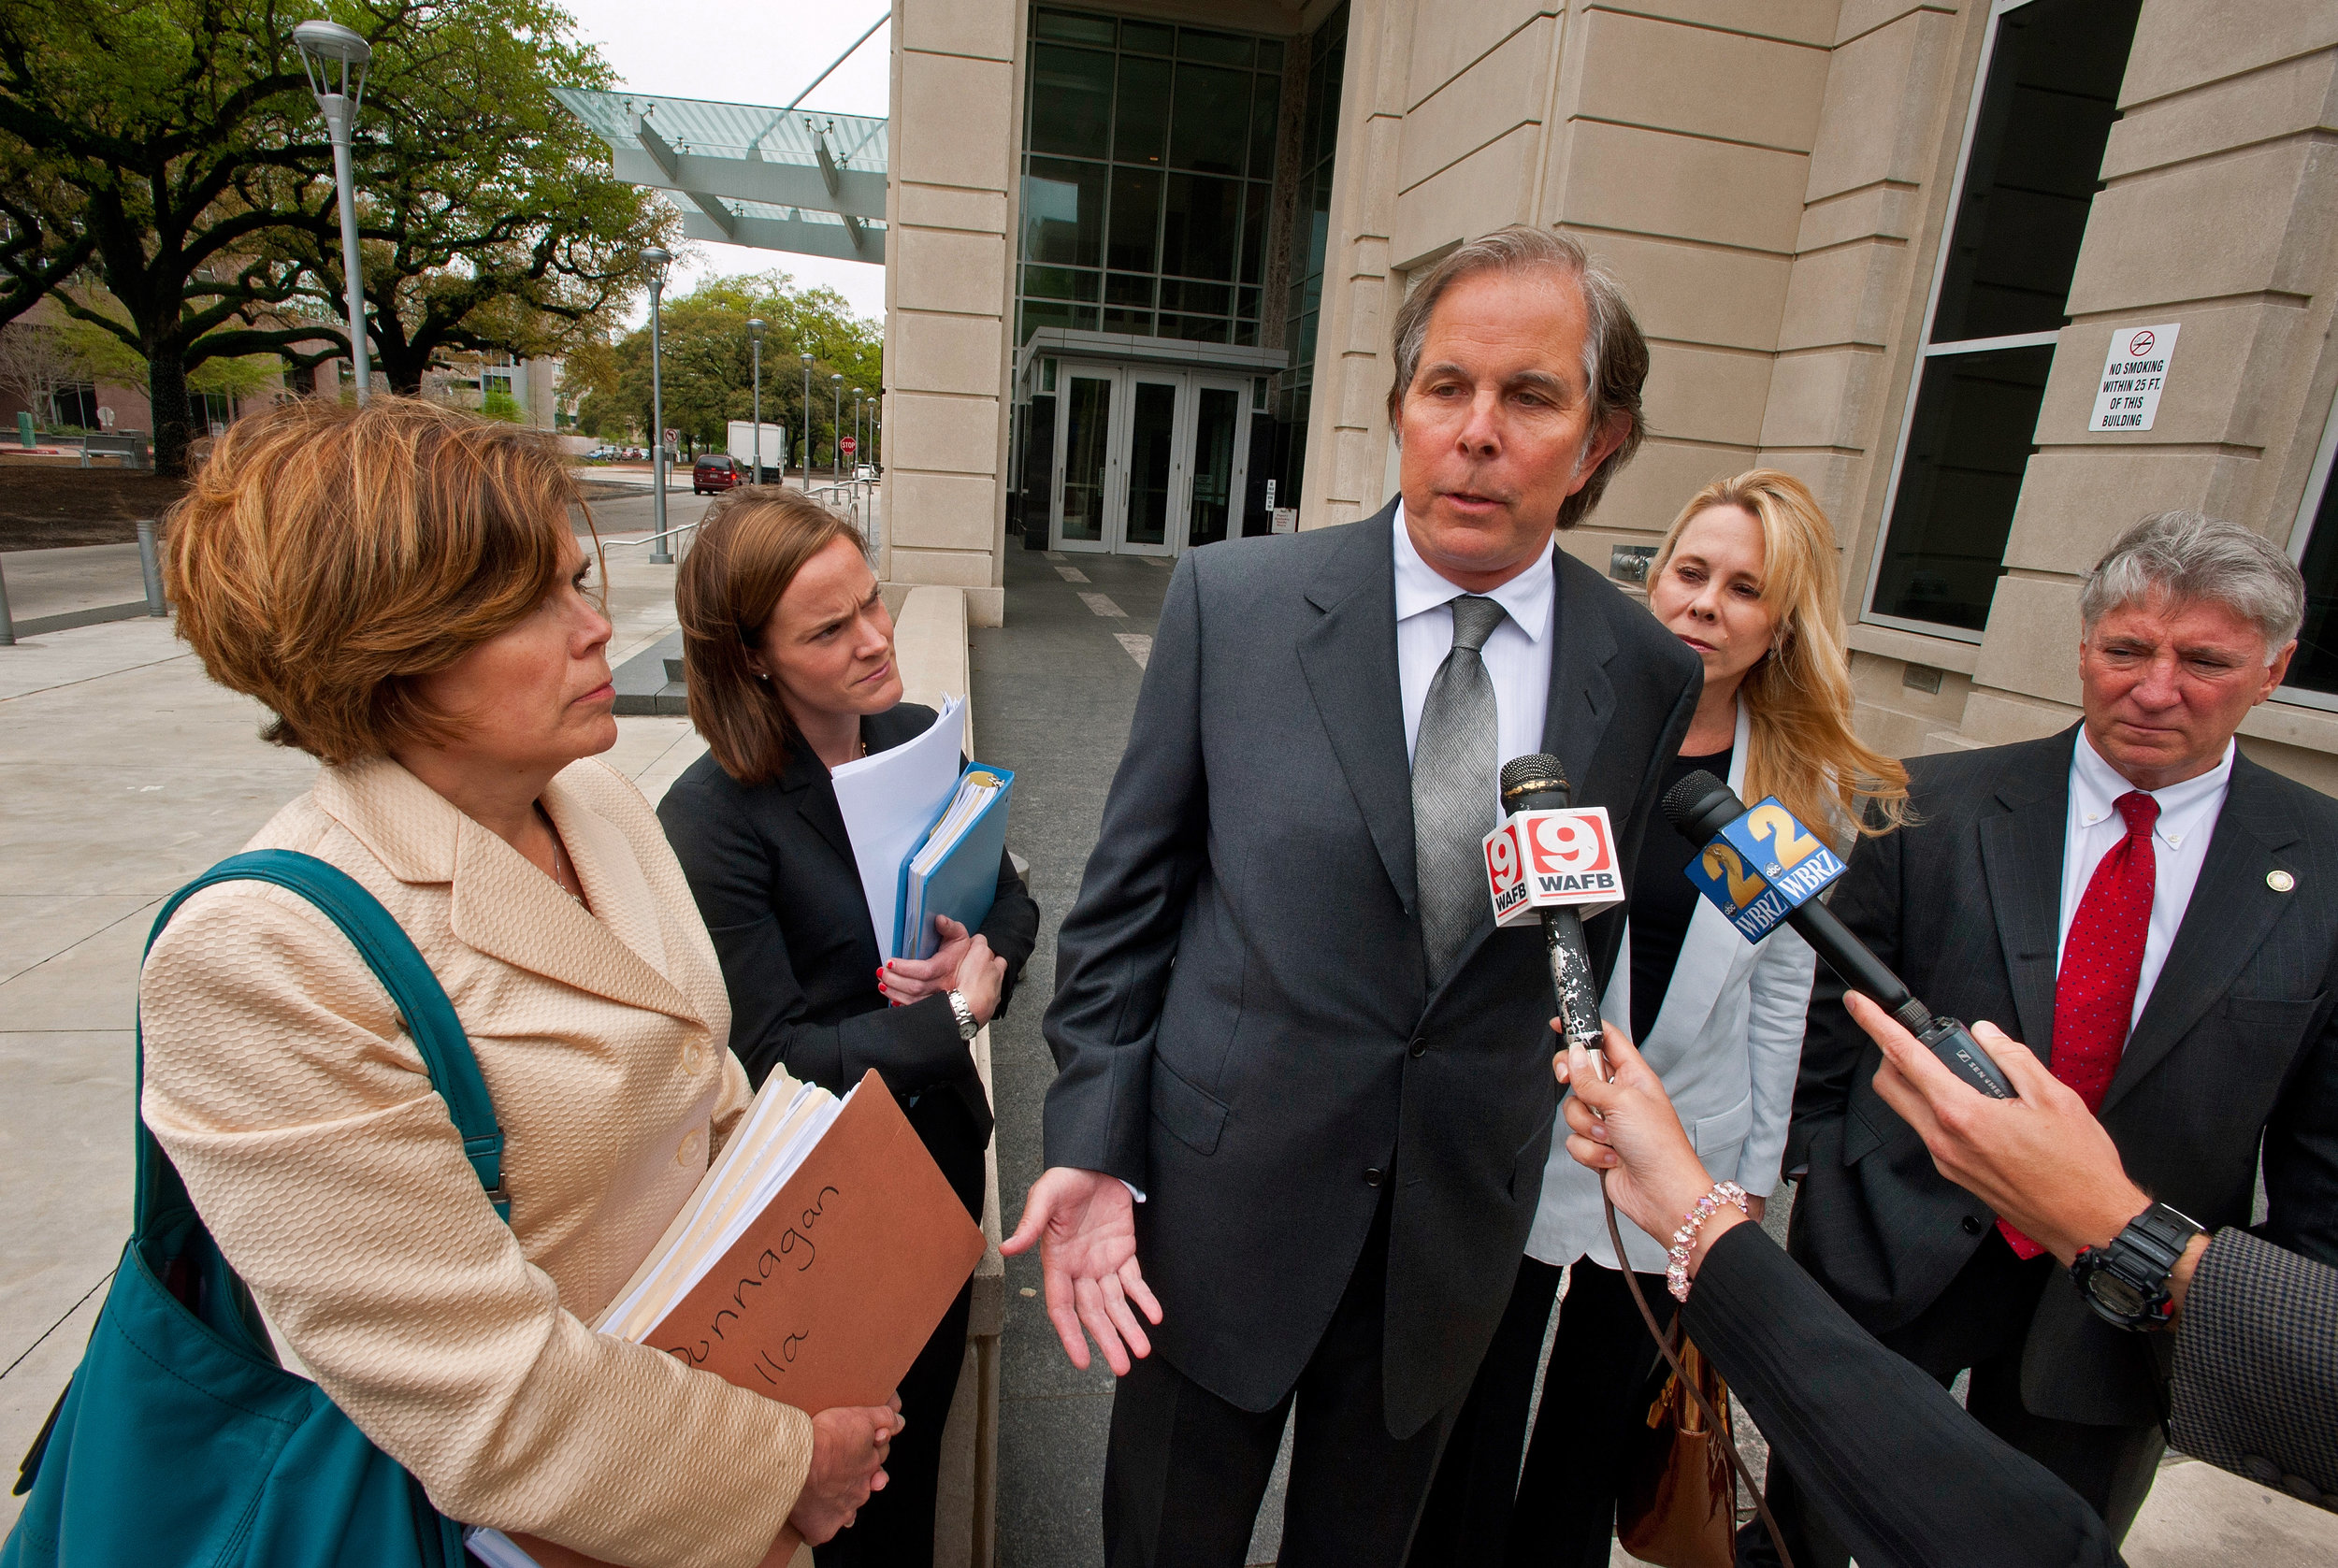 Ted Kergan, center, responds to media questions after Leila Mulla's indictment in April, 2014